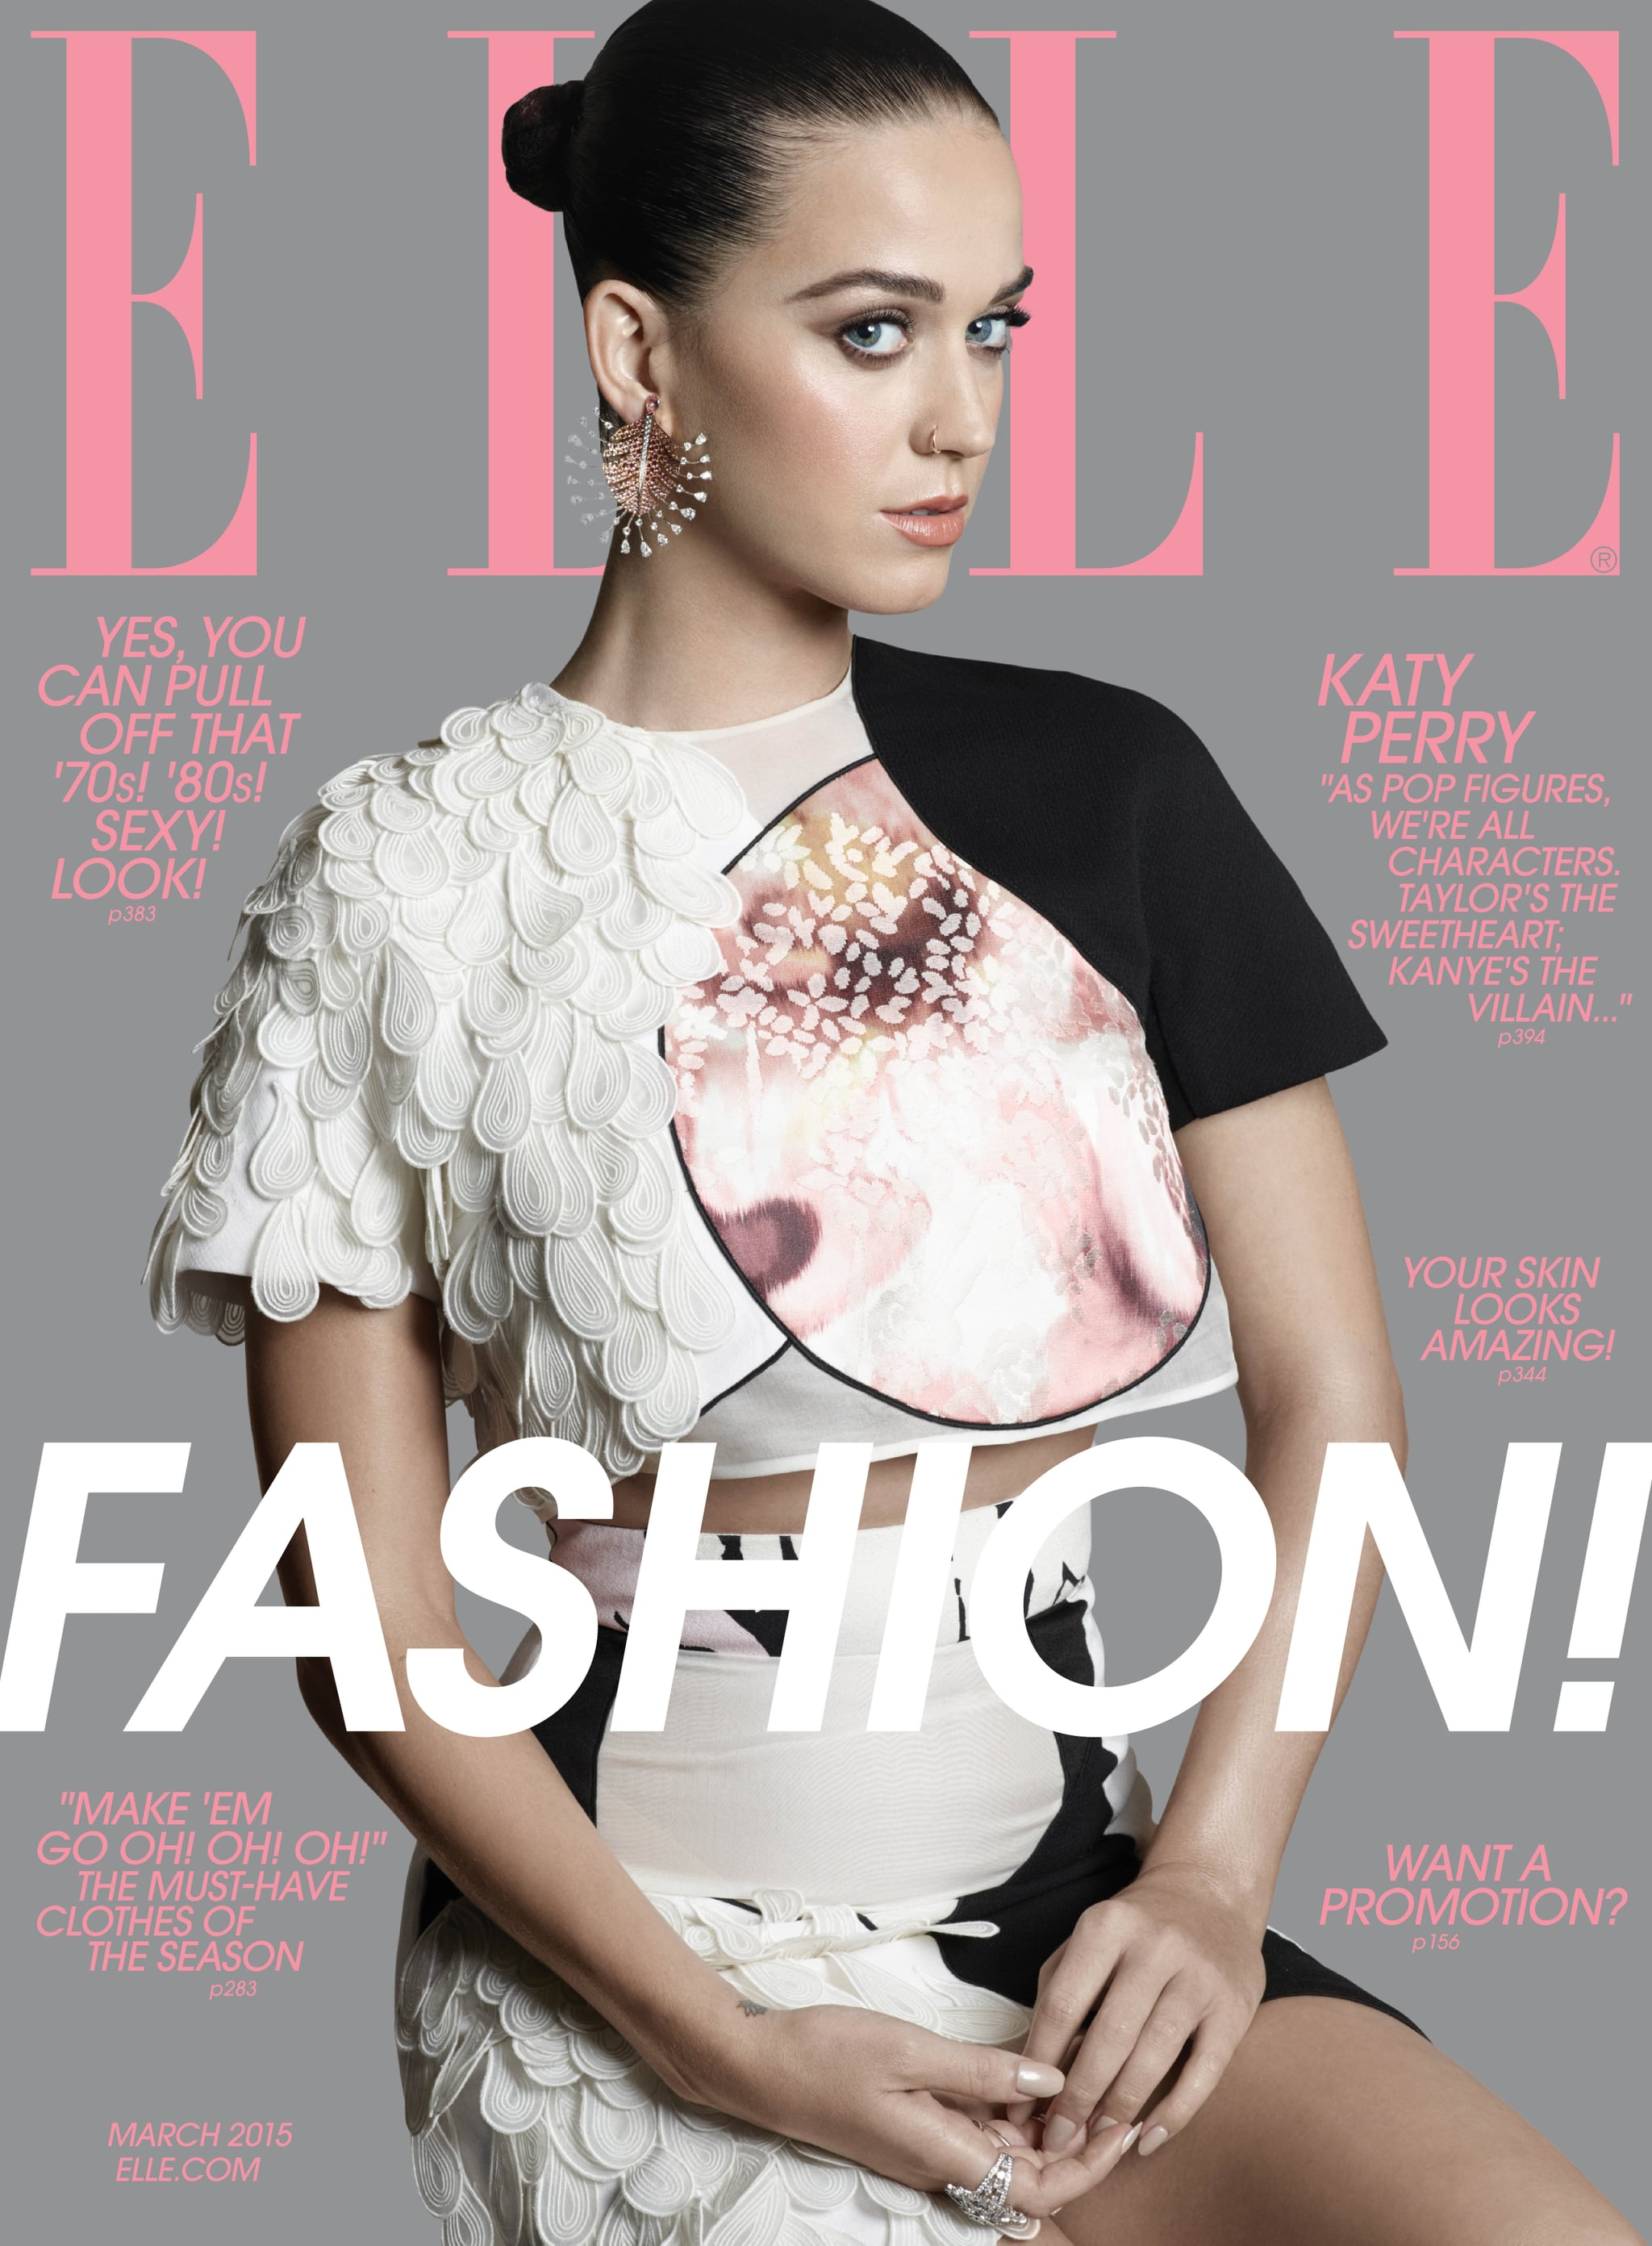 ELLE - Beauty Tips, Fashion Trends, & Celebrity News